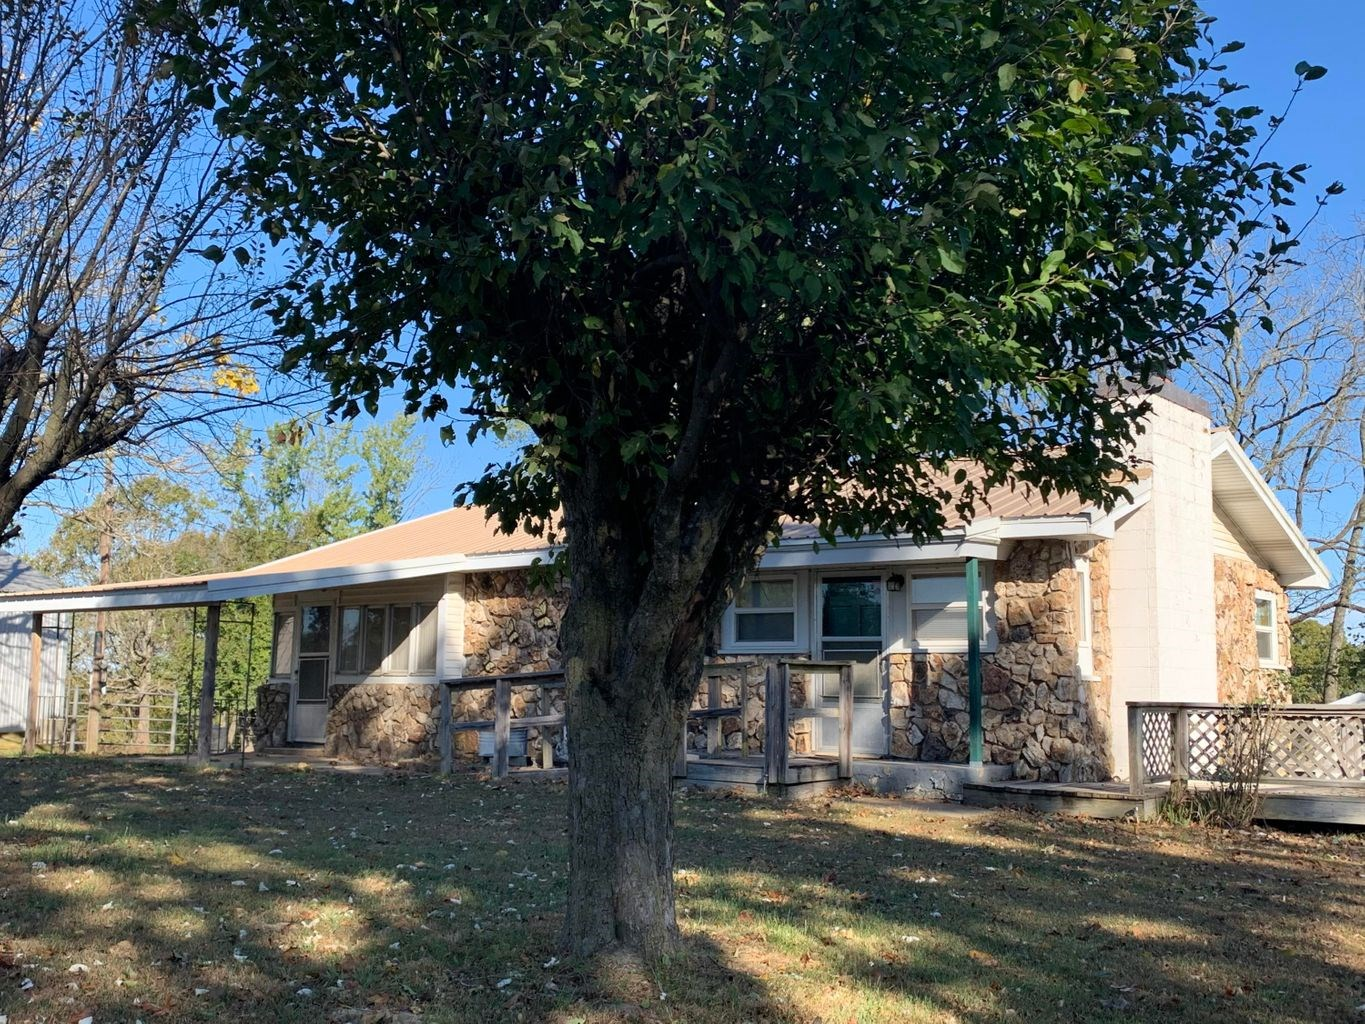 Country Home for Sale in Southern Missouri - Wright County